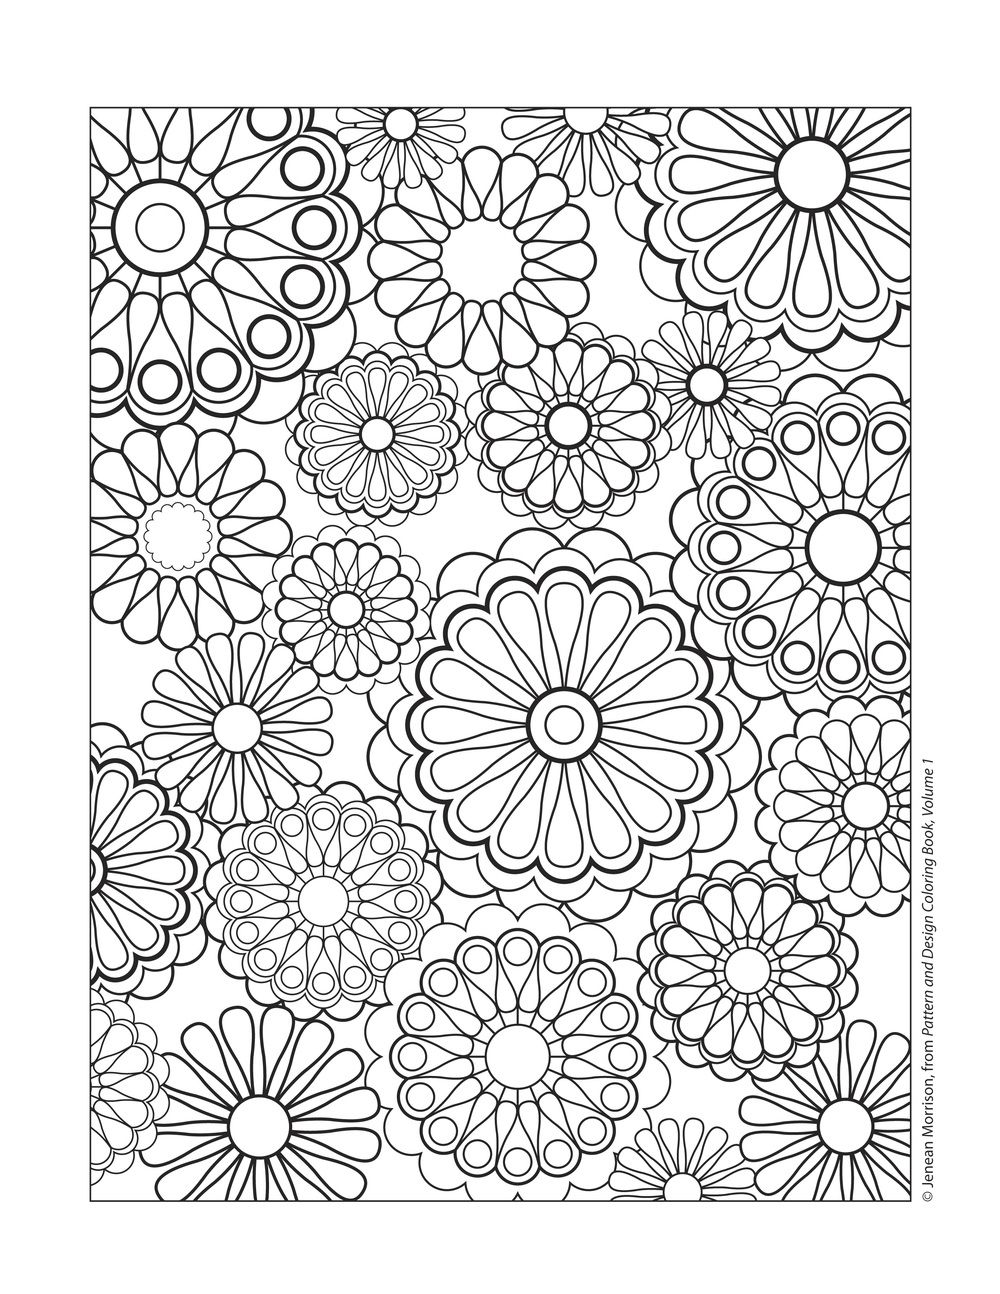 1000 images about coloring on pinterest adult coloring pages